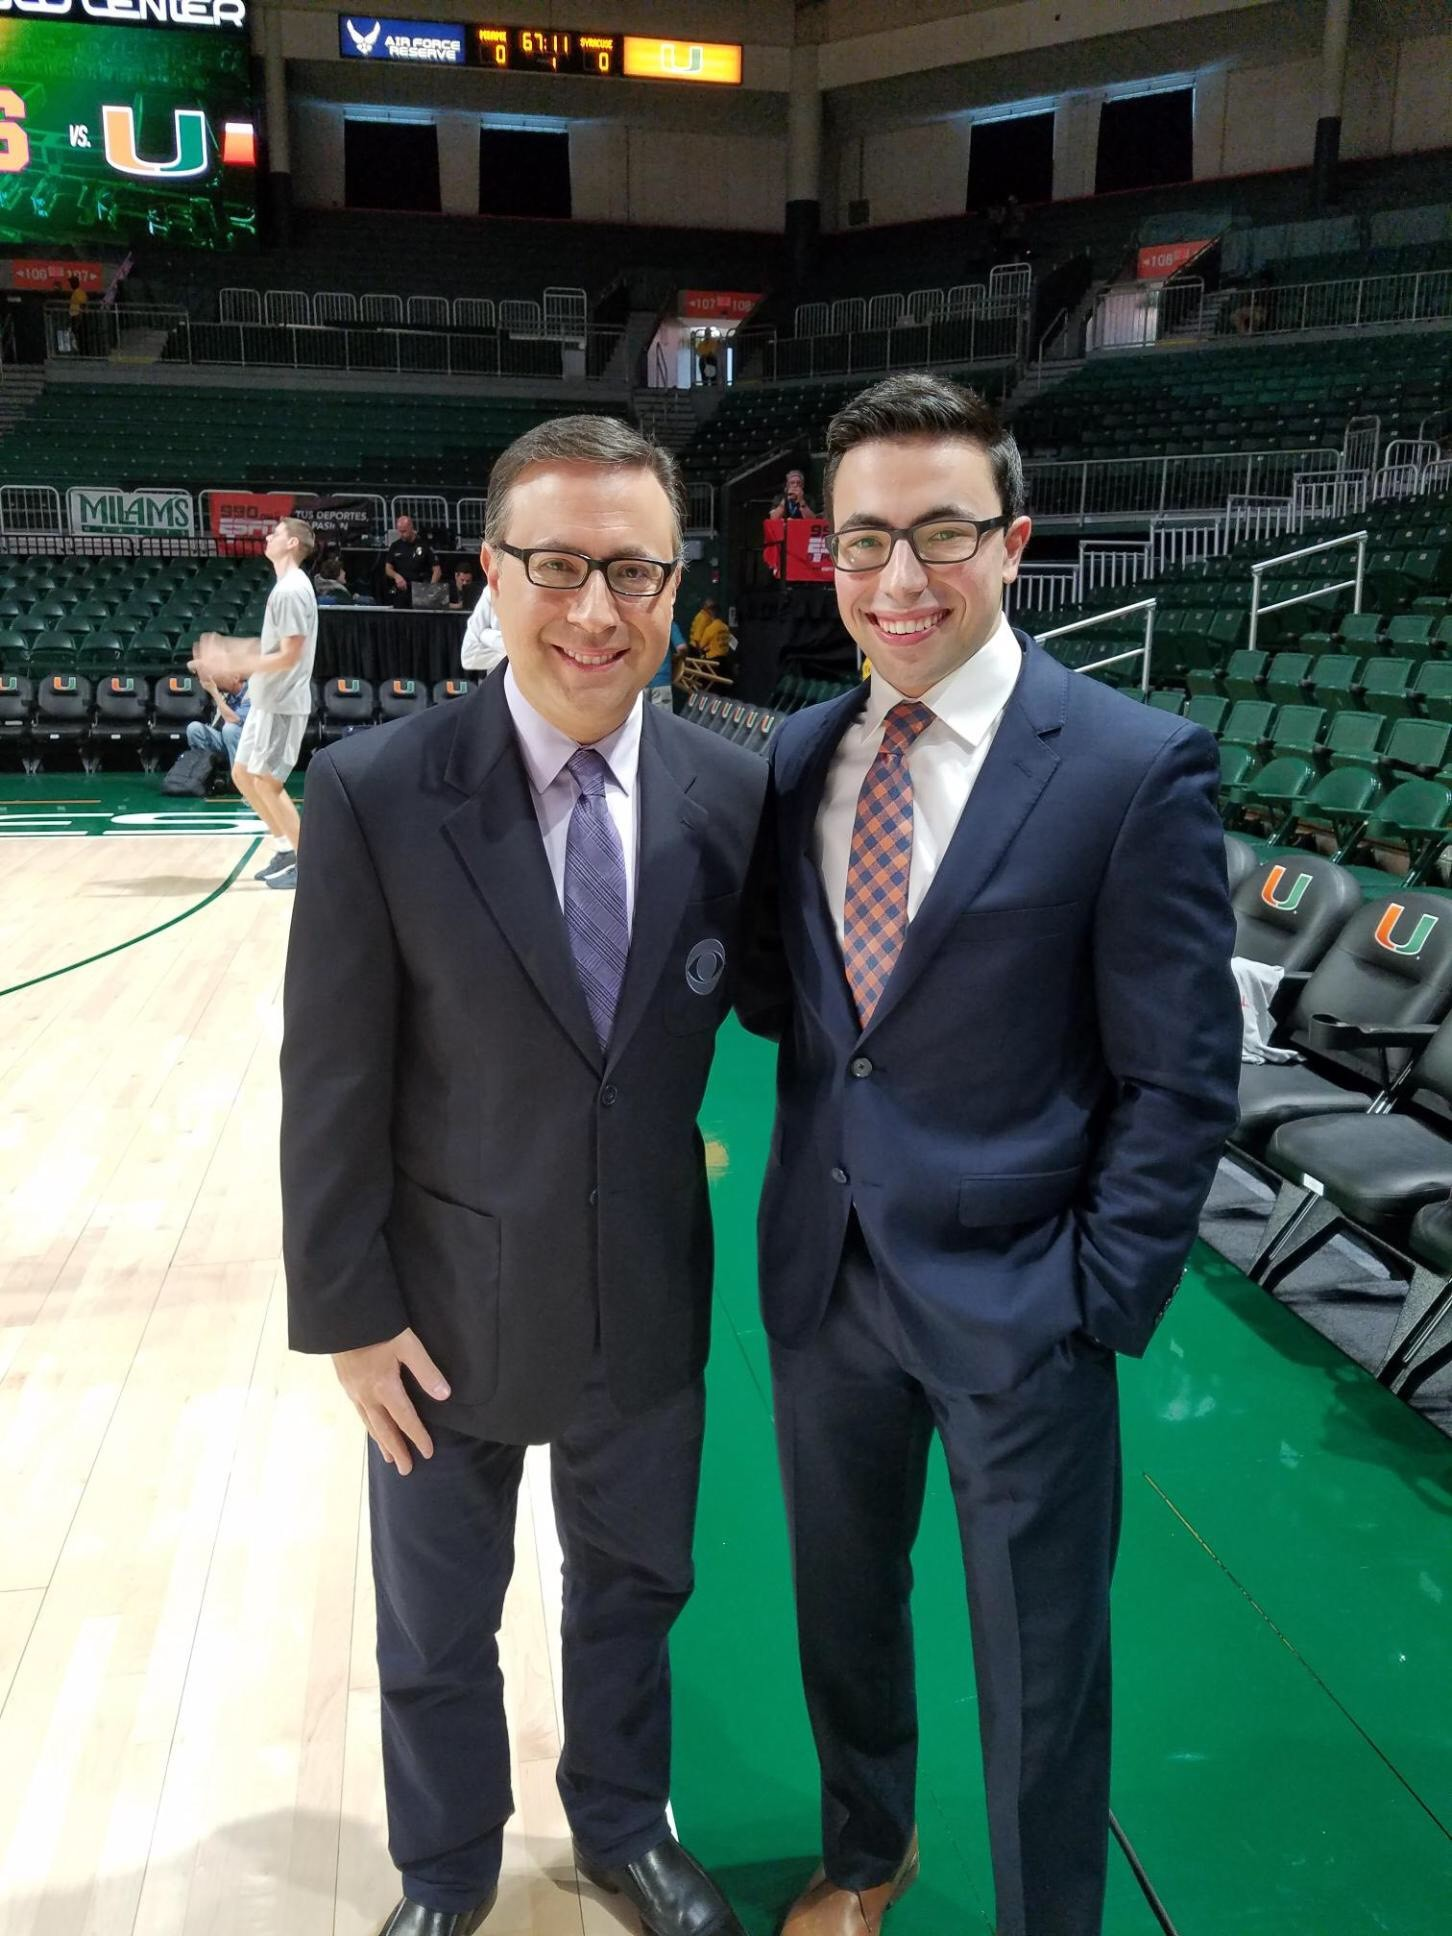 Ian Eagle stands next to his son Noah on the Miami basketball court. Both men are wearing suits and smiling. Both are wearing glasses